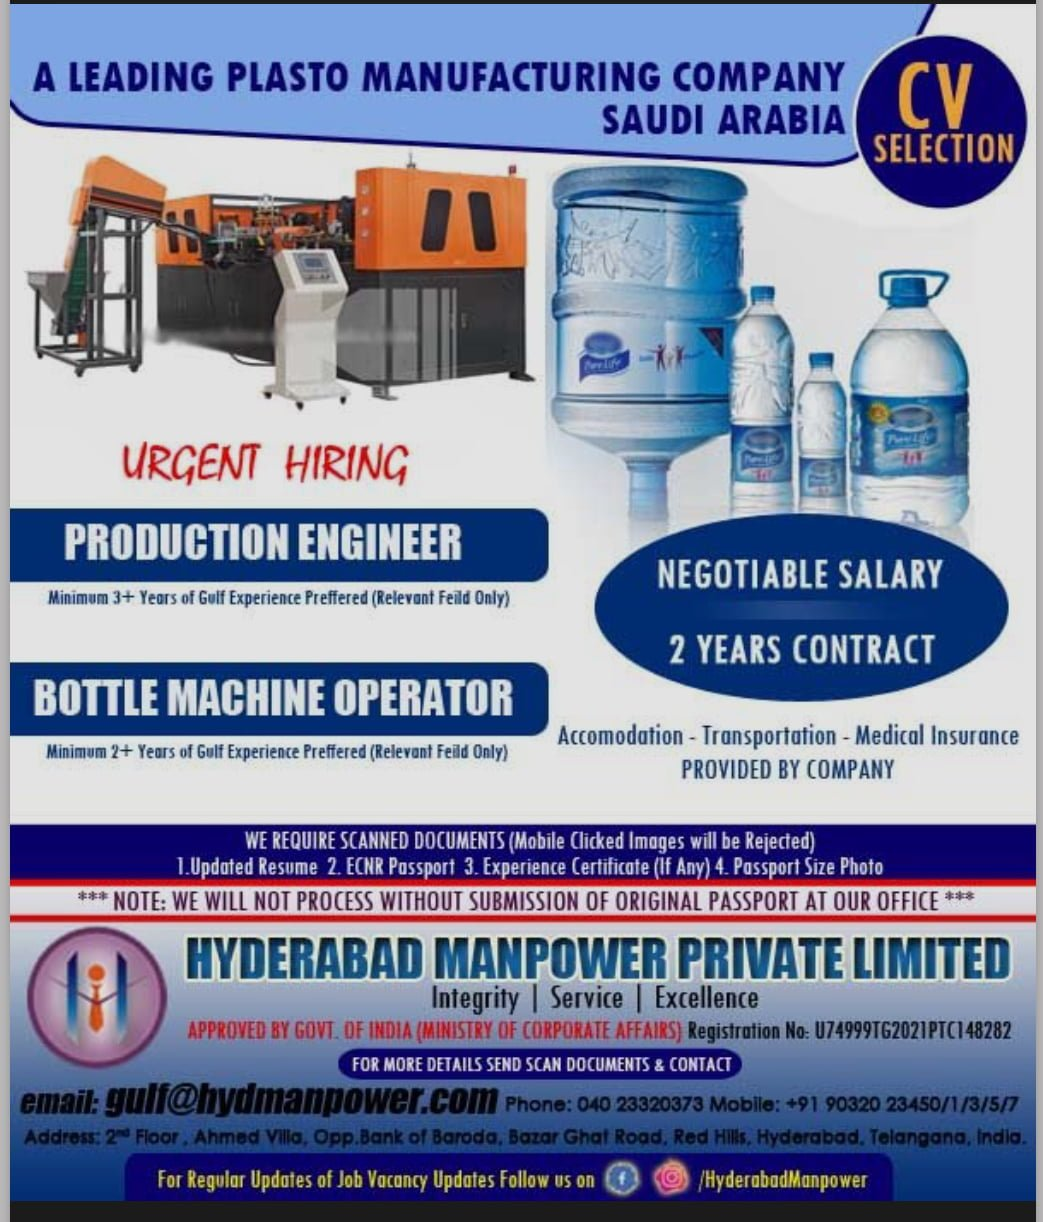 REQUIREMENT FOR A LEADING PLASTO MANUFACTURING COMPANY SAUDI ARABIA